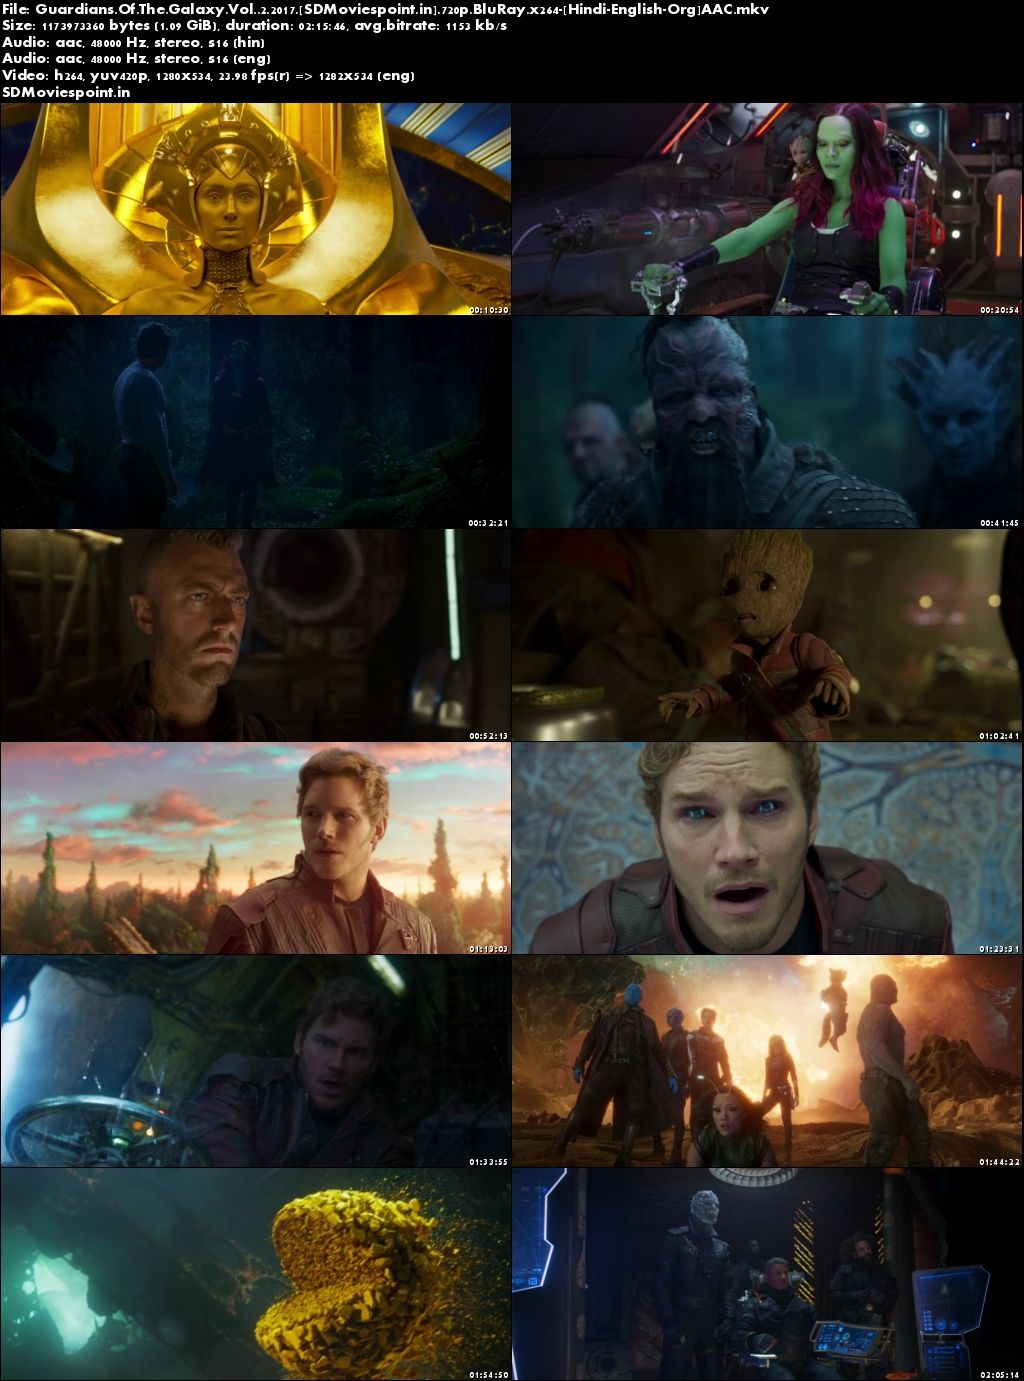 Screen Shots Guardians Of The Galaxy Vol.2 Full Movie Download In Hindi Dubbed